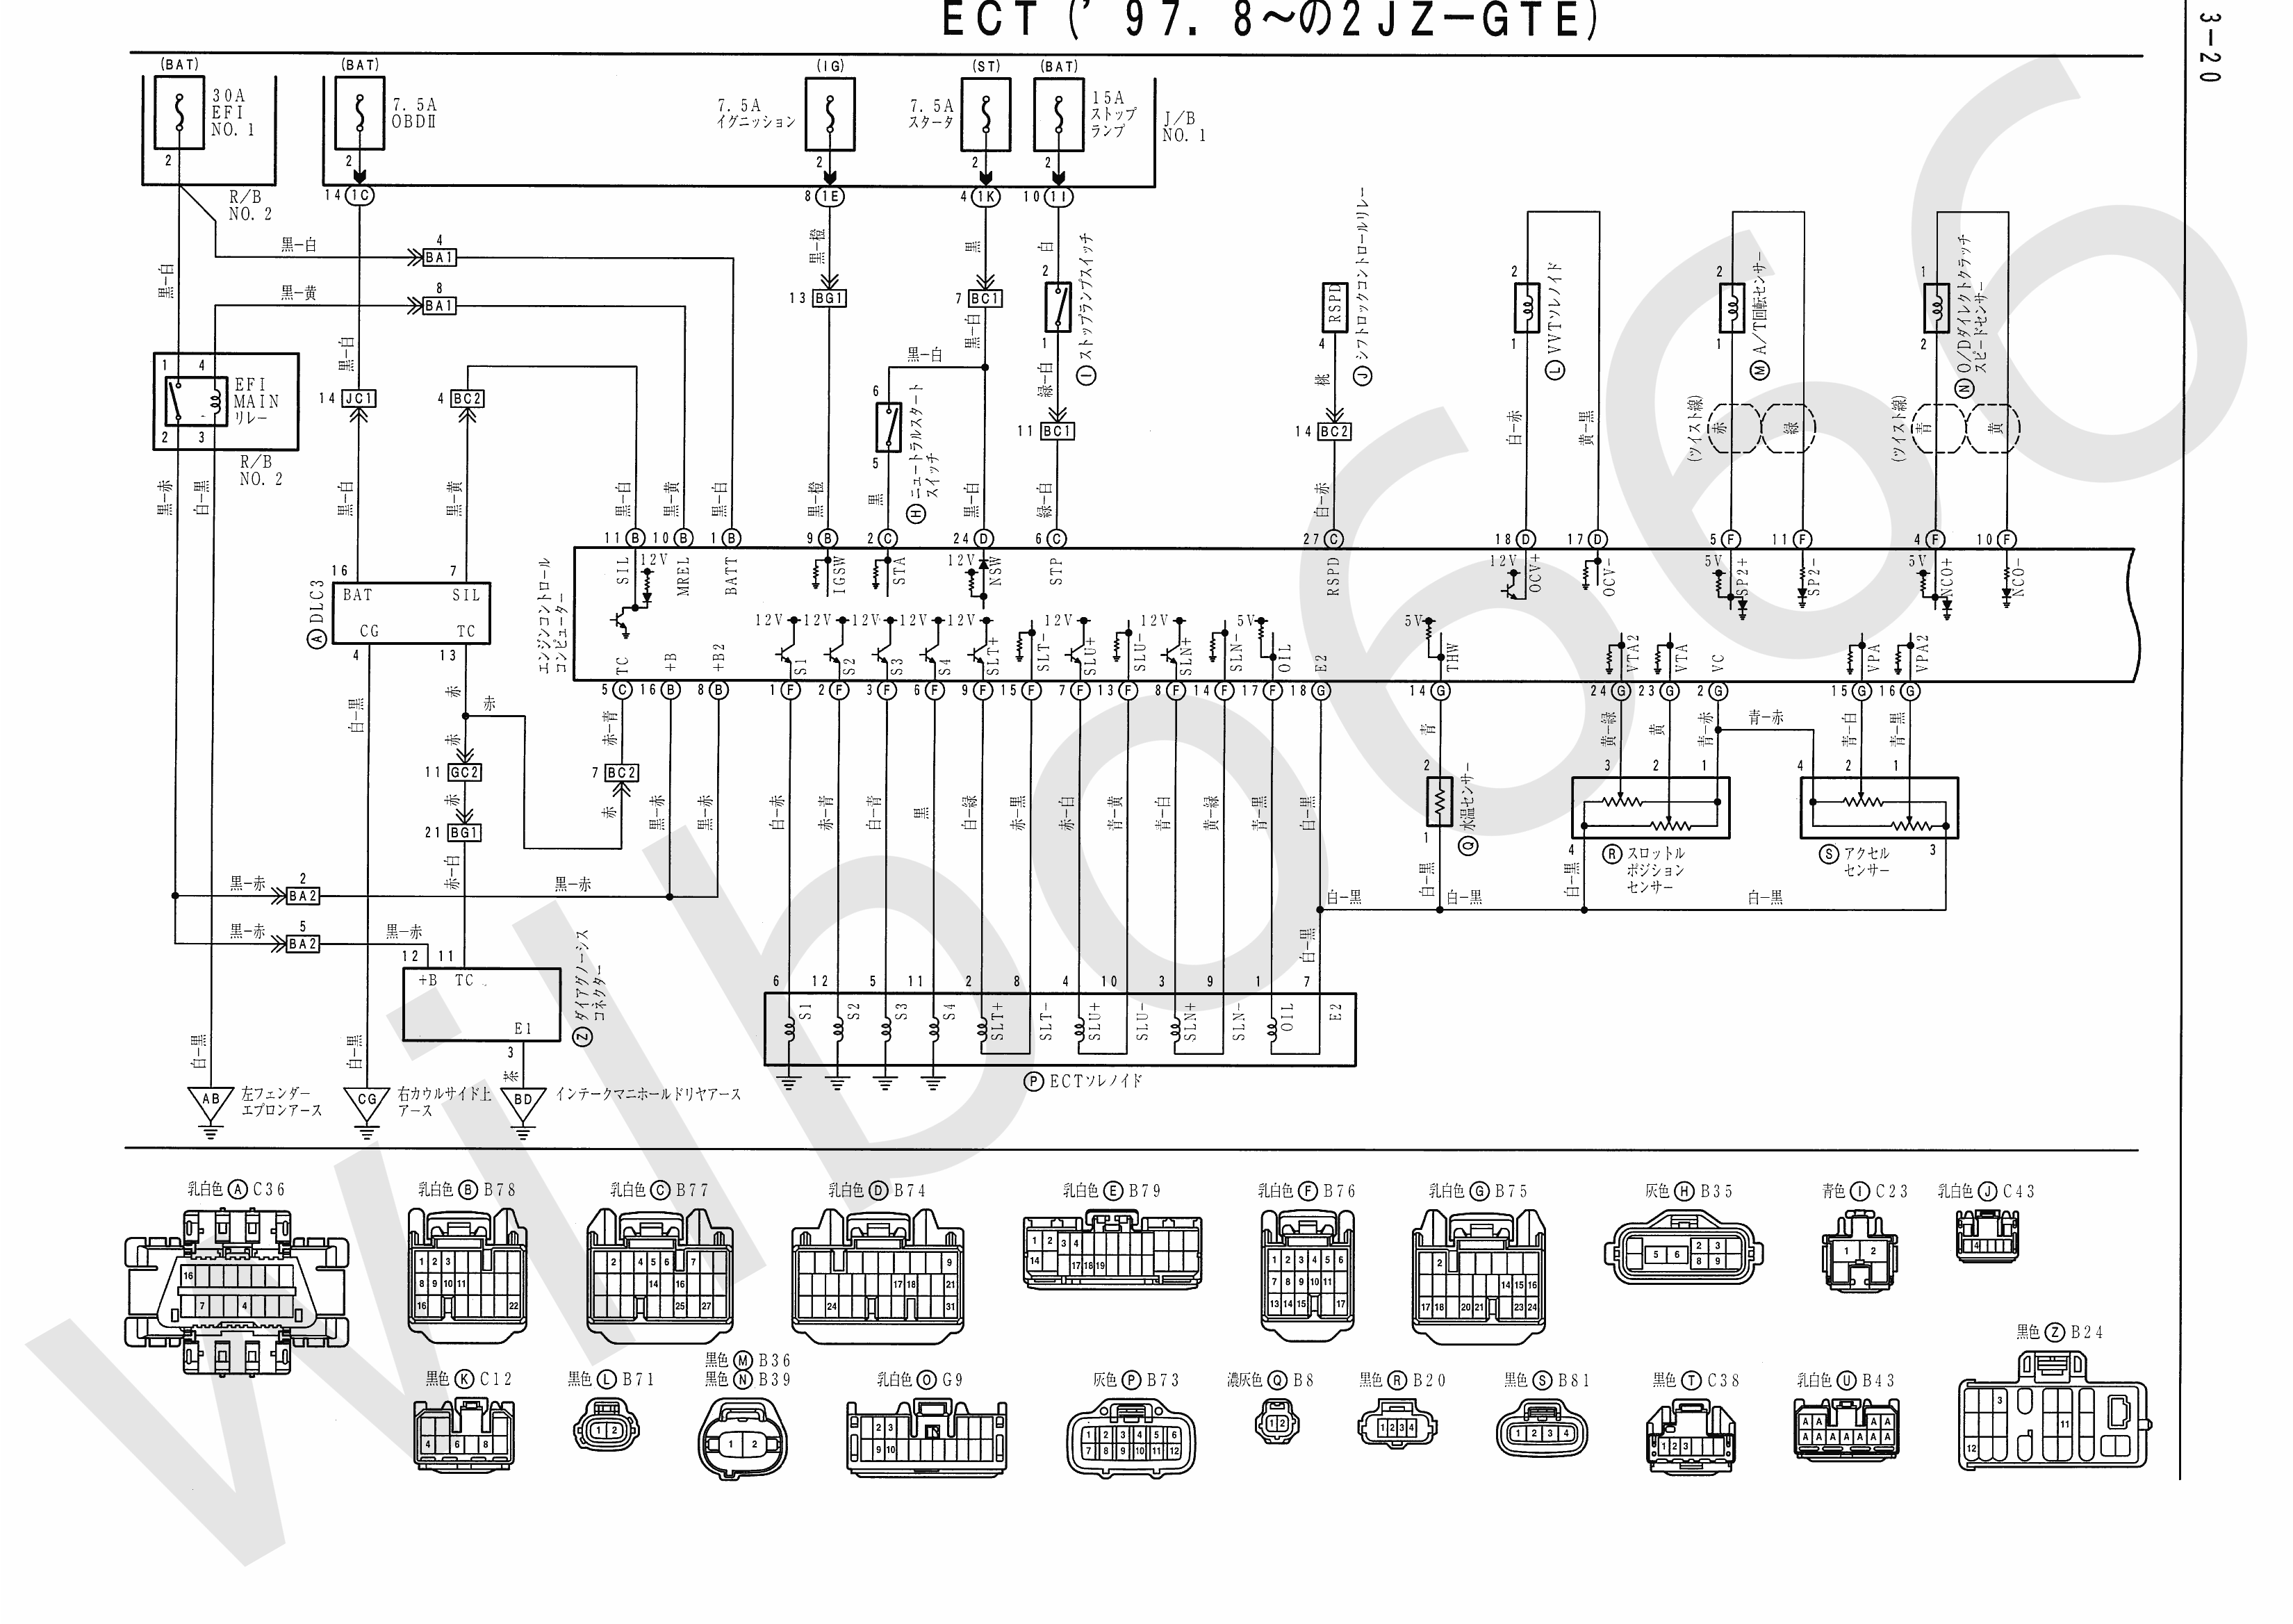 Wiring Diagram Toyota Supra : Supra engine diagram free image for user